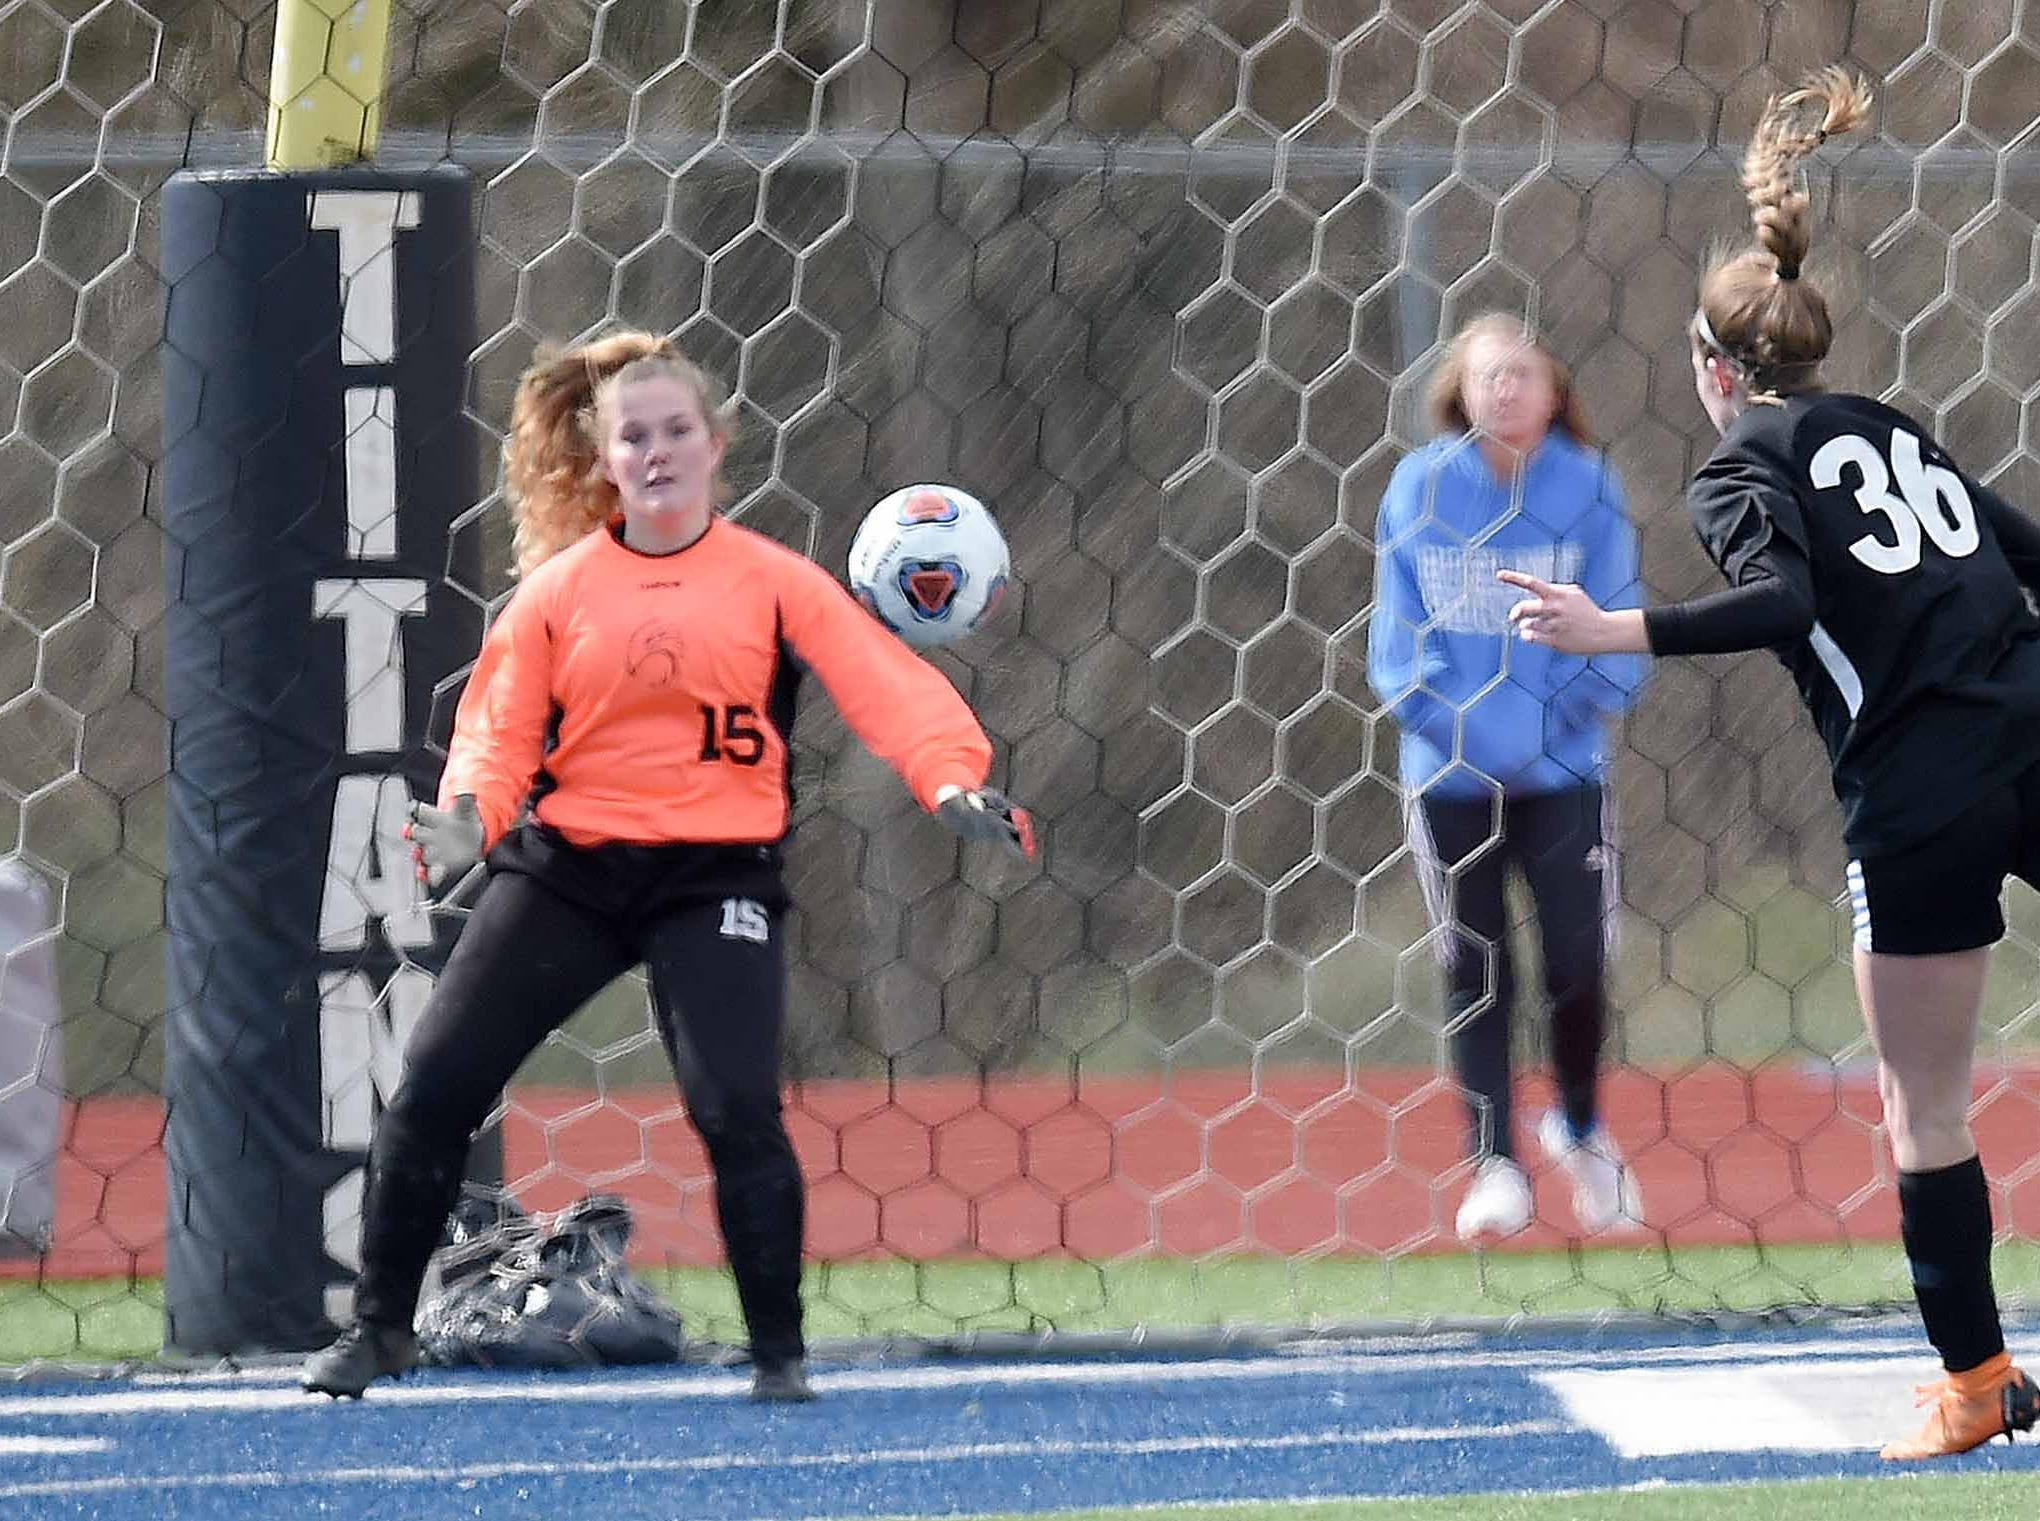 West Lauderdale's Ember Temple (36) heads the ball for a goal against Florence in the Class 4A state championship in the MHSAA BlueCross Blue Shield of Mississippi Soccer Classic on Saturday, February 9, 2019, at Ridgeland High School in Ridgeland, Miss.